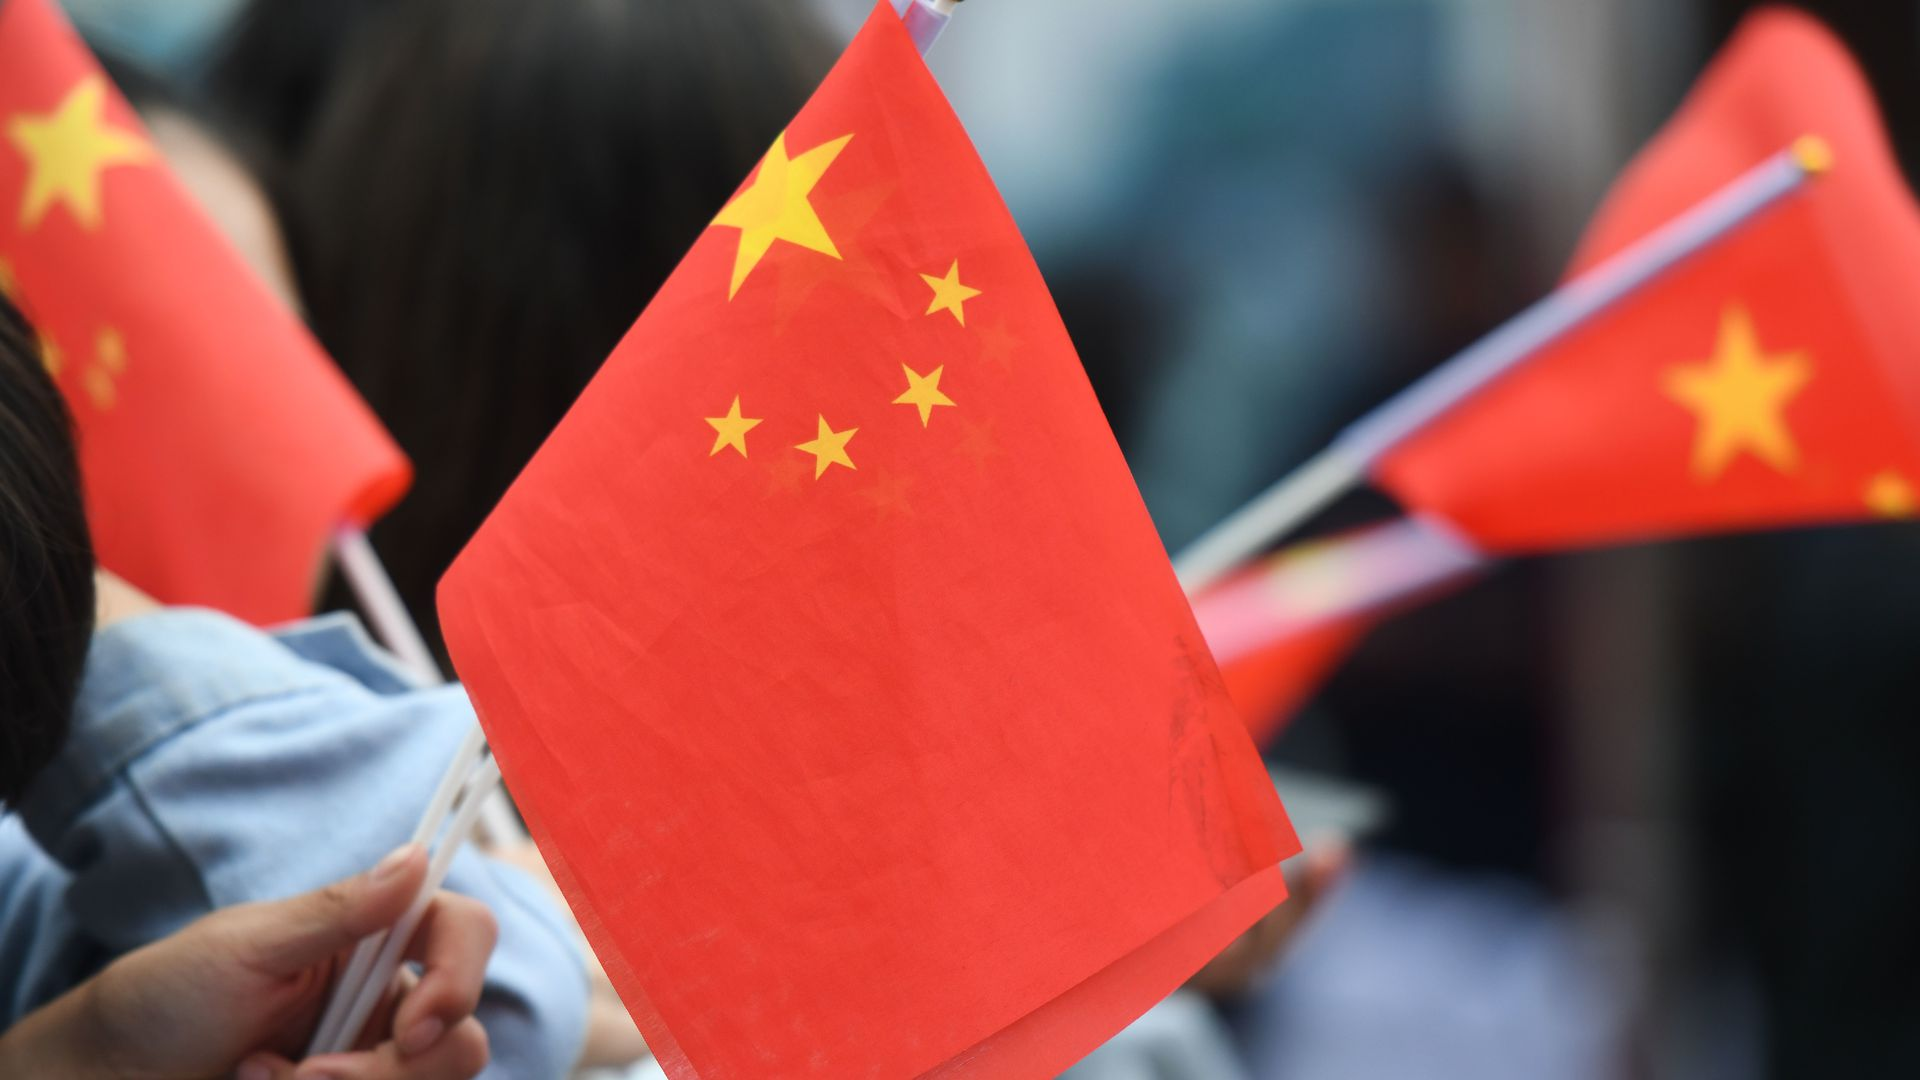 People wave miniature Chinese flags.